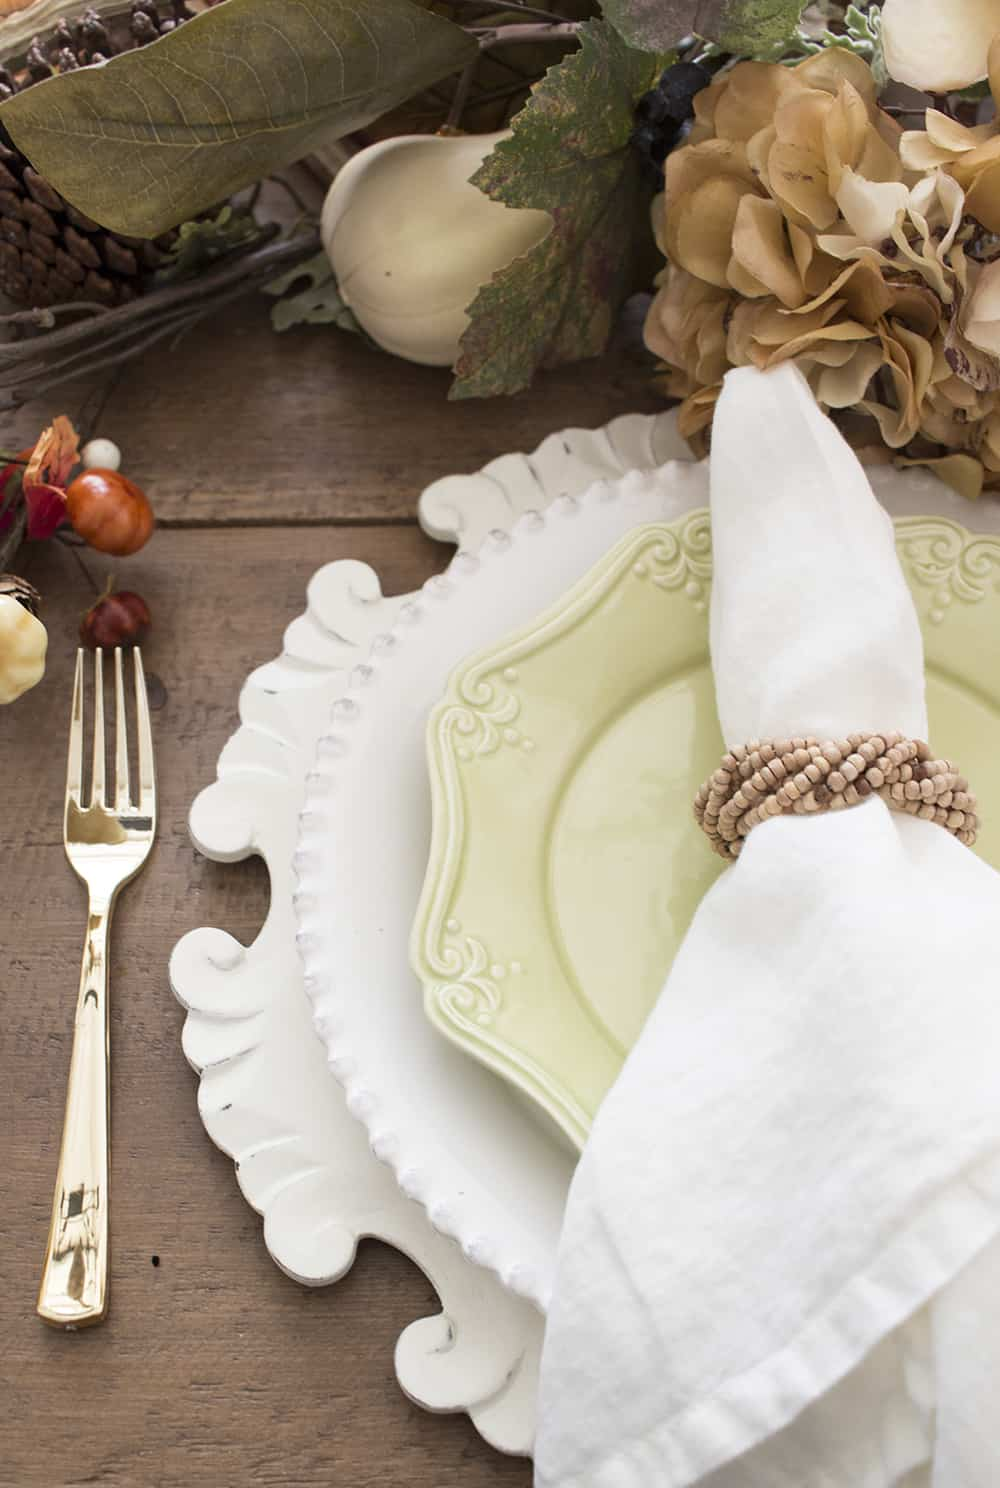 cream charger white and green plates